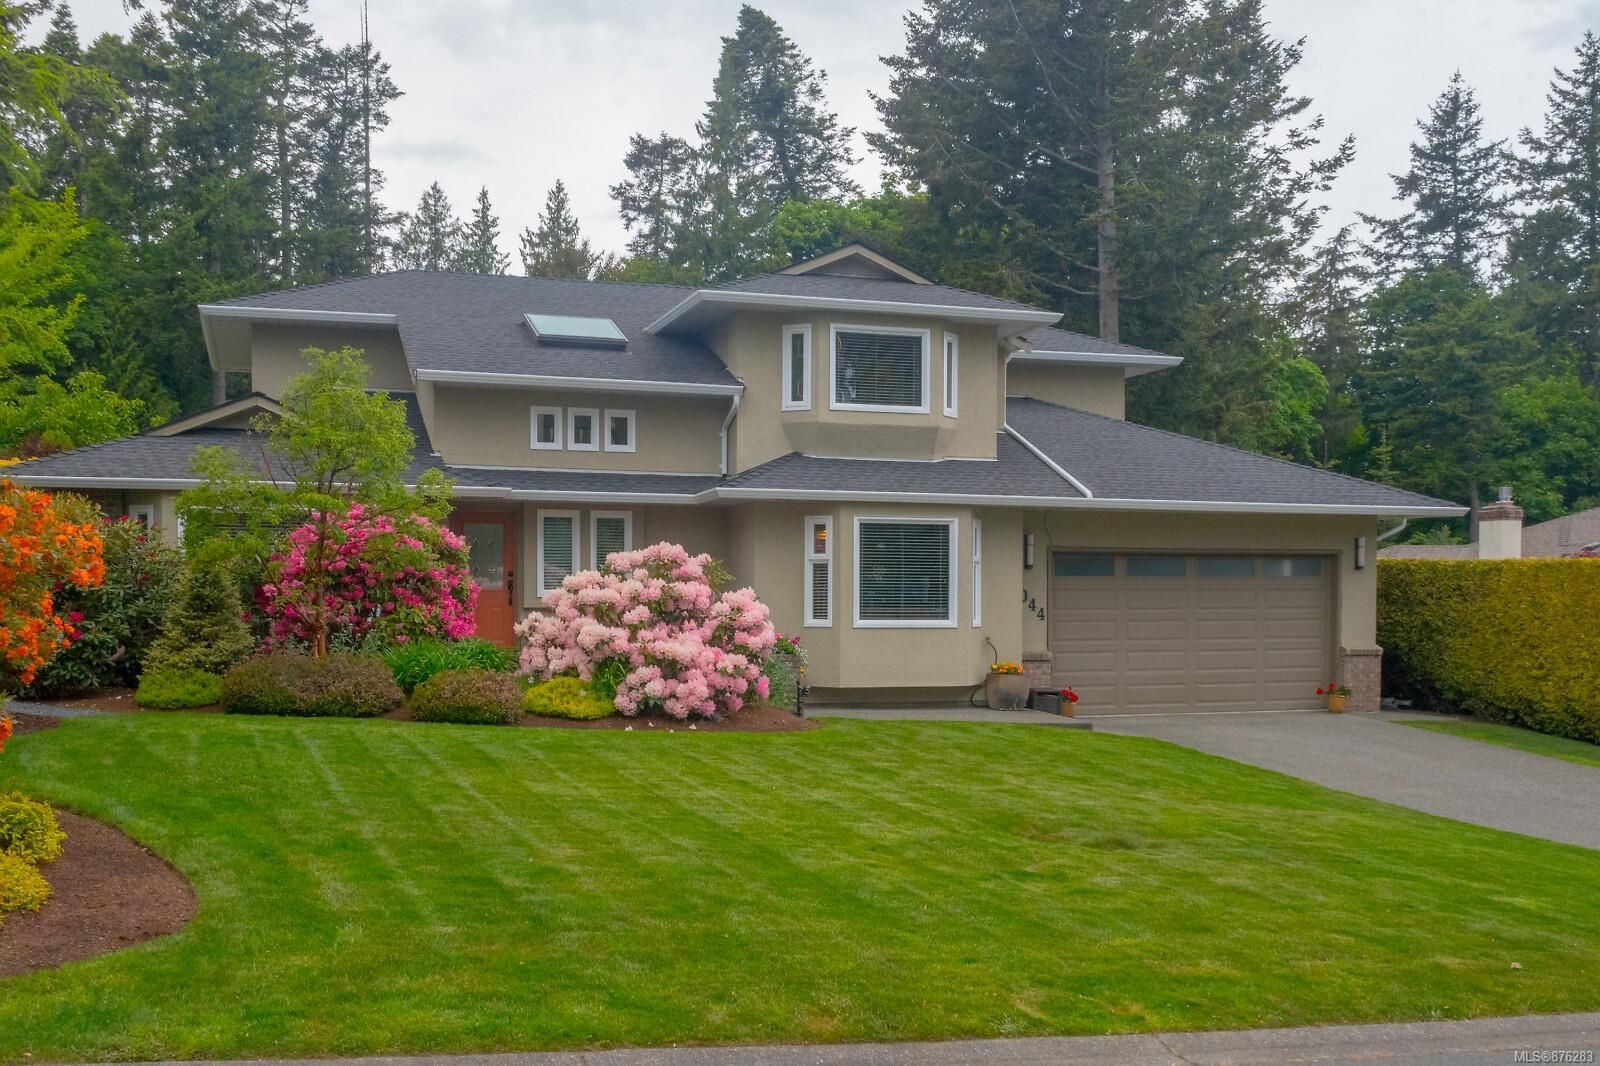 Main Photo: 5044 Cambria Wood Terr in : SE Cordova Bay House for sale (Saanich East)  : MLS®# 876283